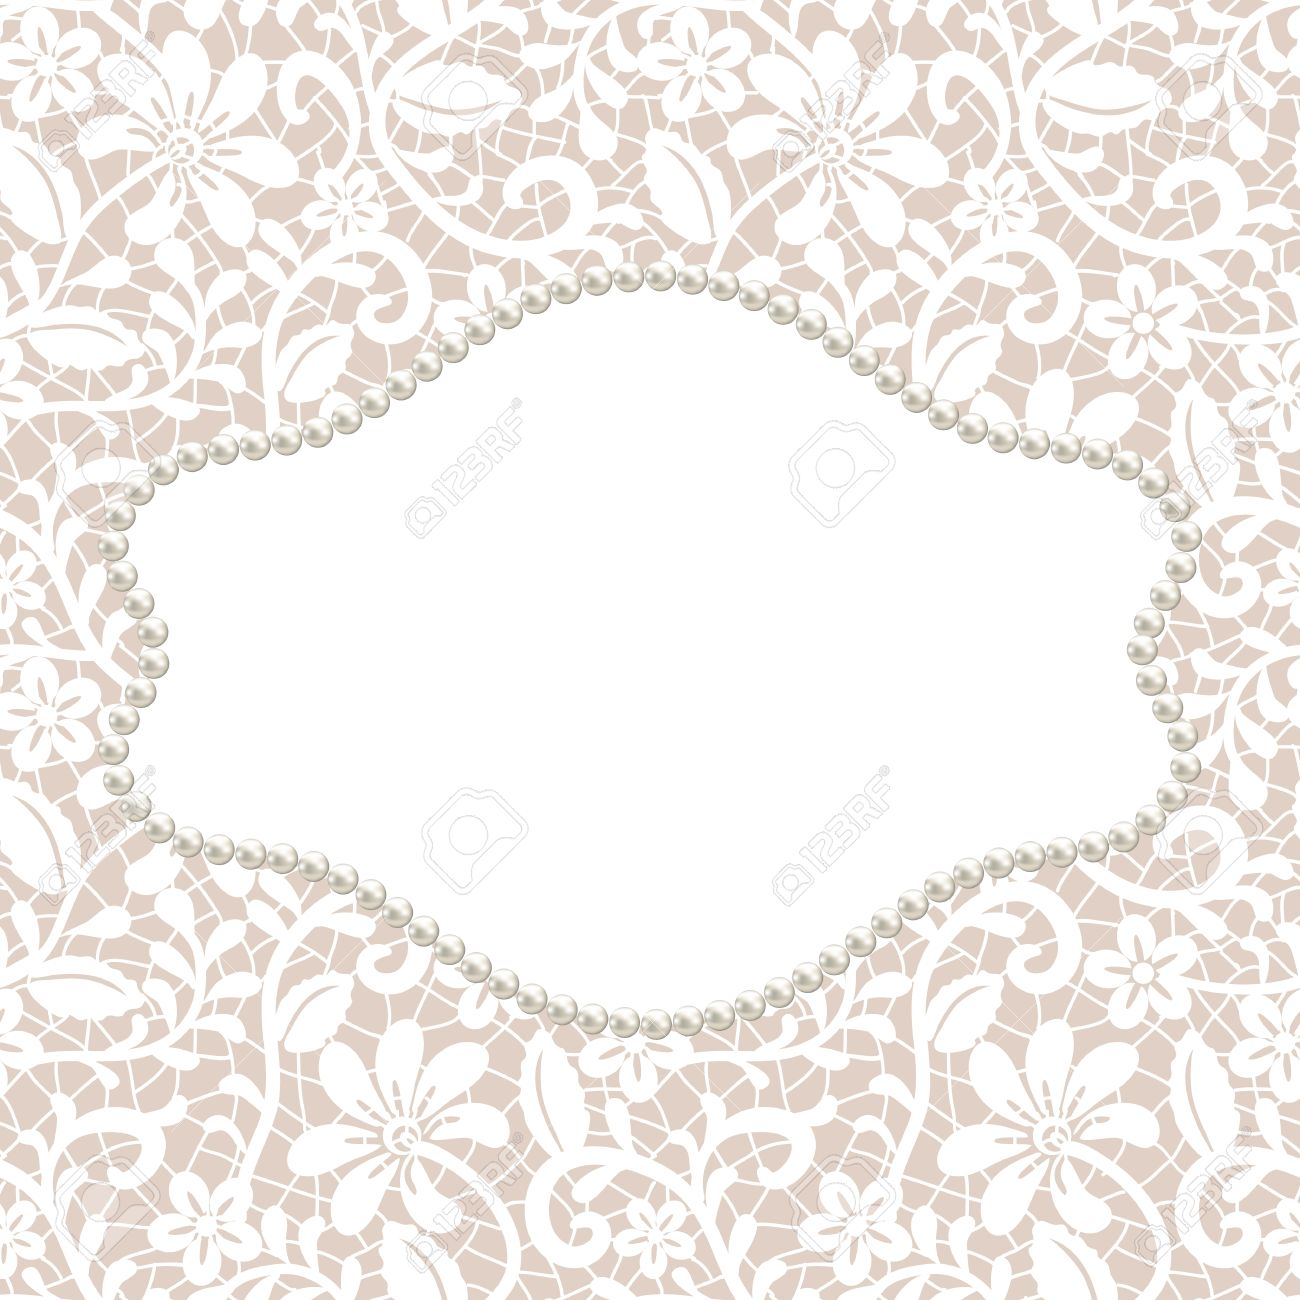 vector white lace with floral pattern and pearl frame on beige background